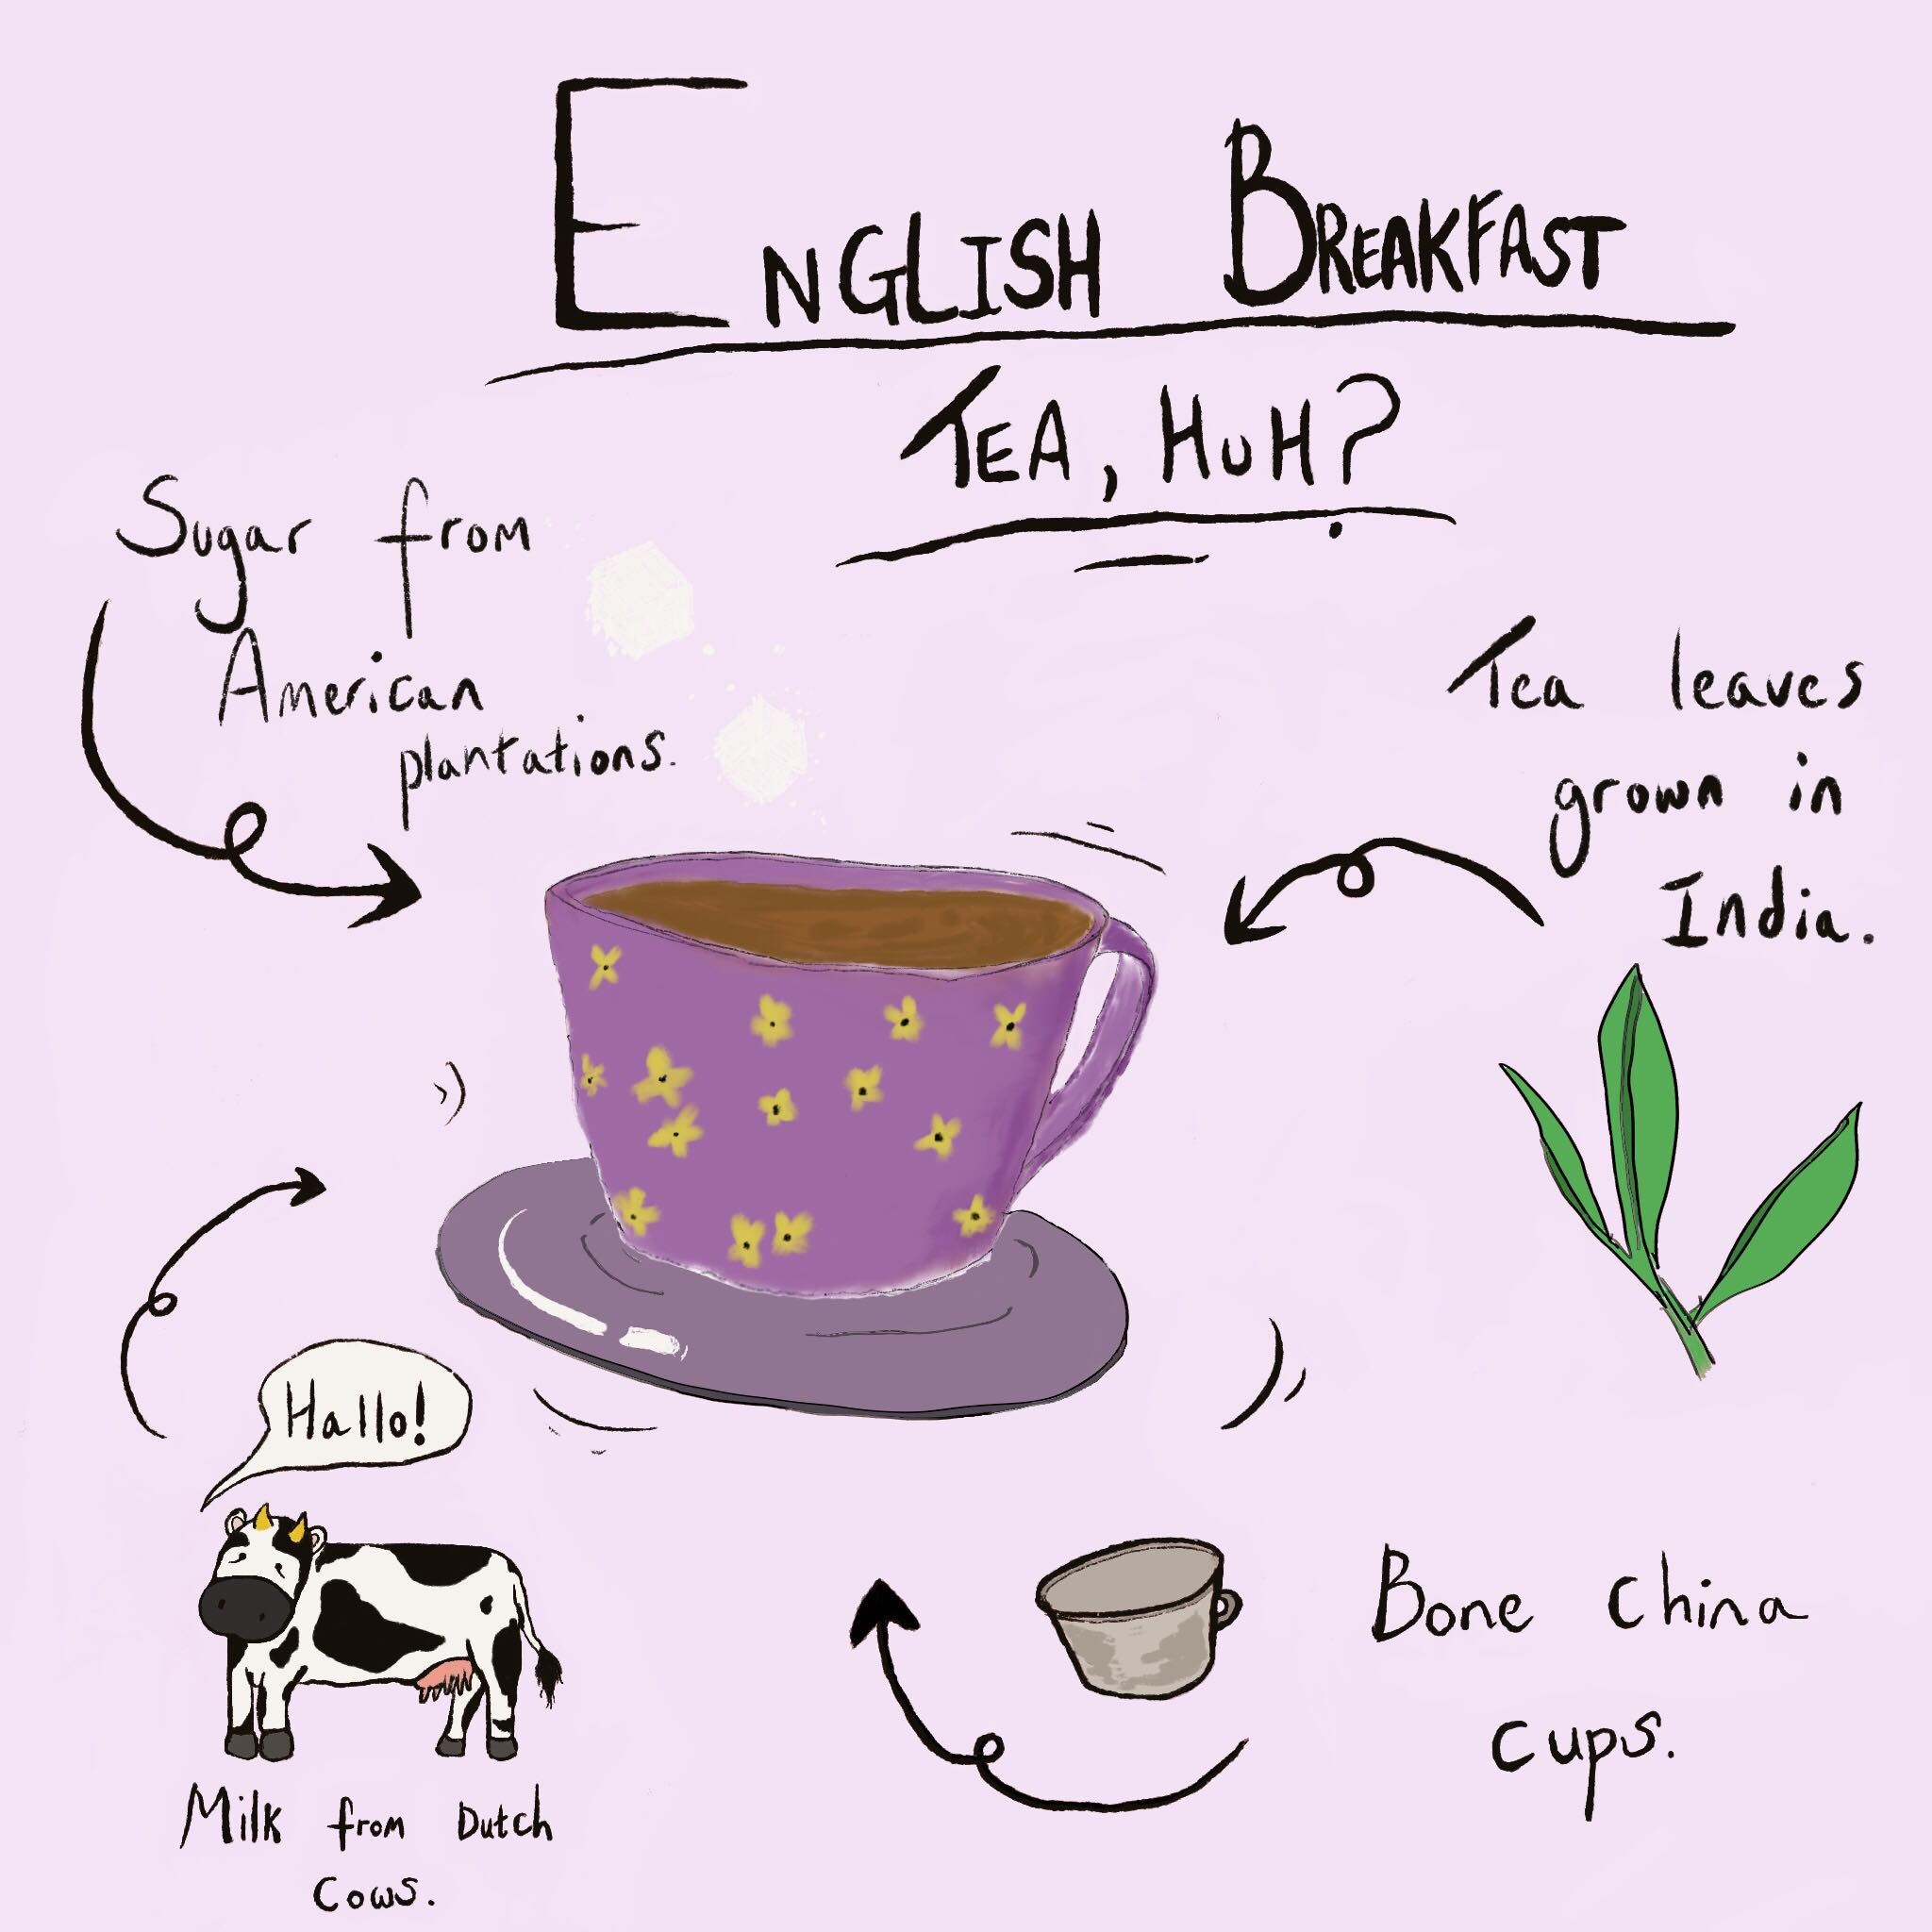 """English Breakfast Tea, huh?"" by Larissa Lebe"